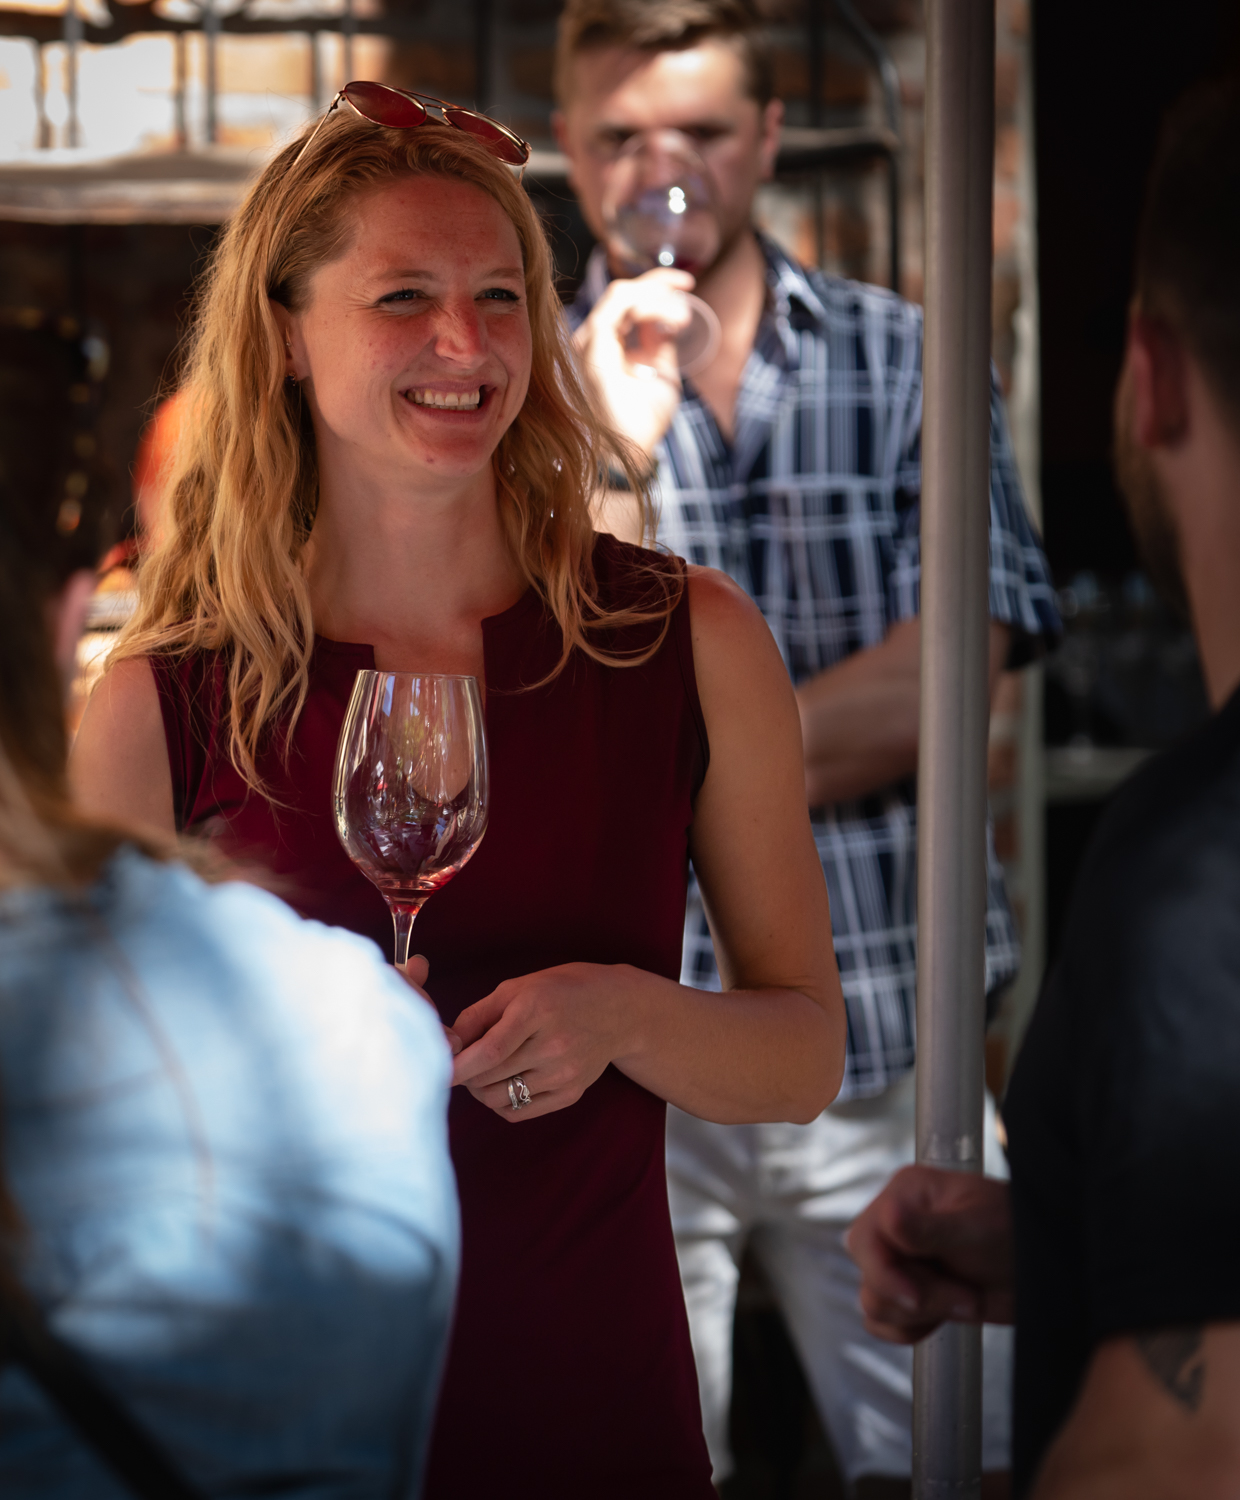 Vinmarket – woman with wine glass 2